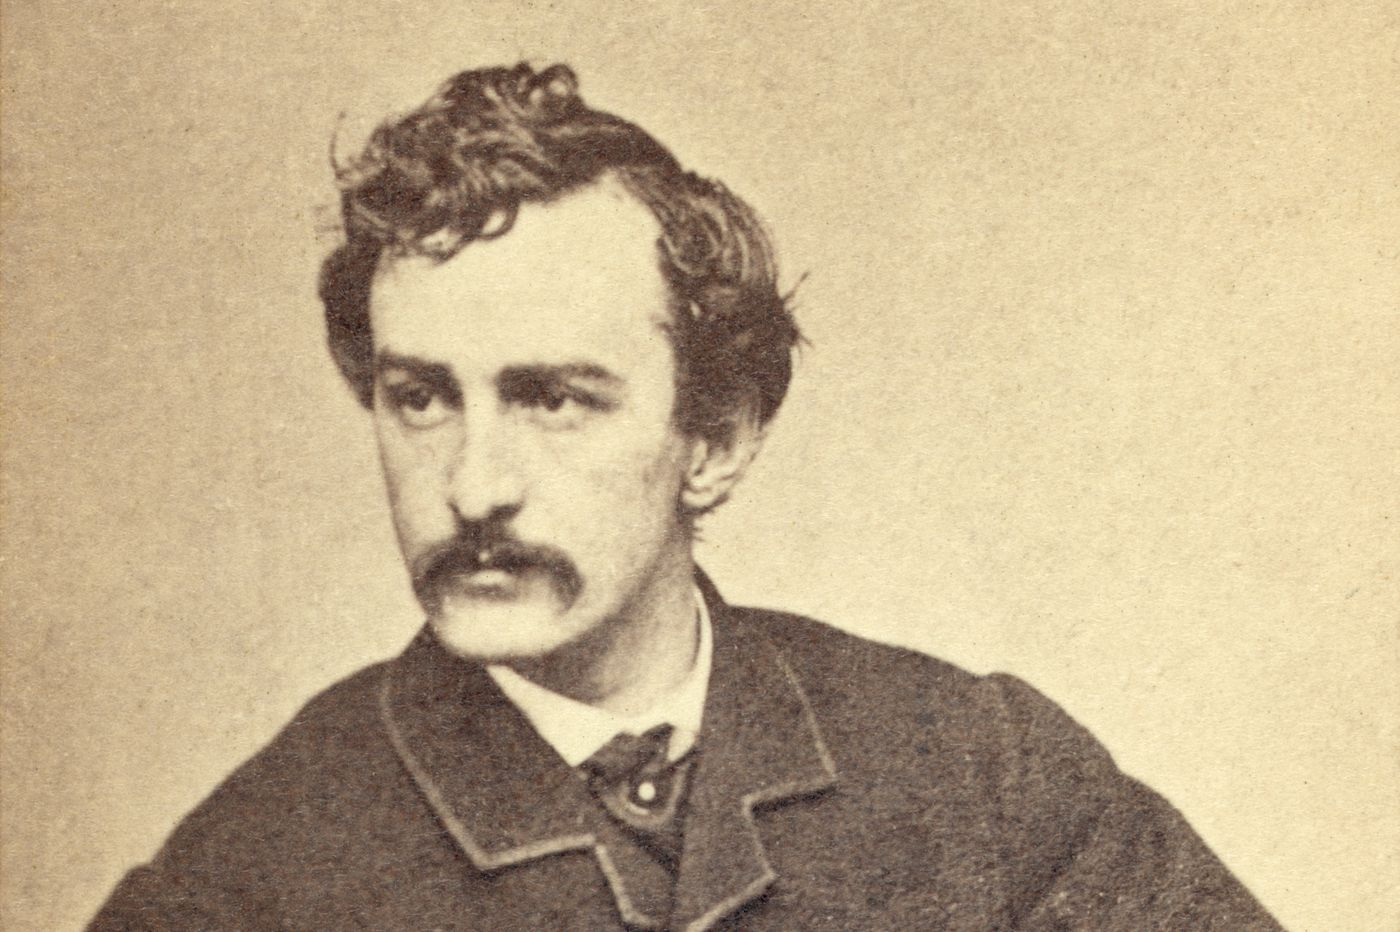 Did John Wilkes Booth get away with murdering President Abraham Lincoln?